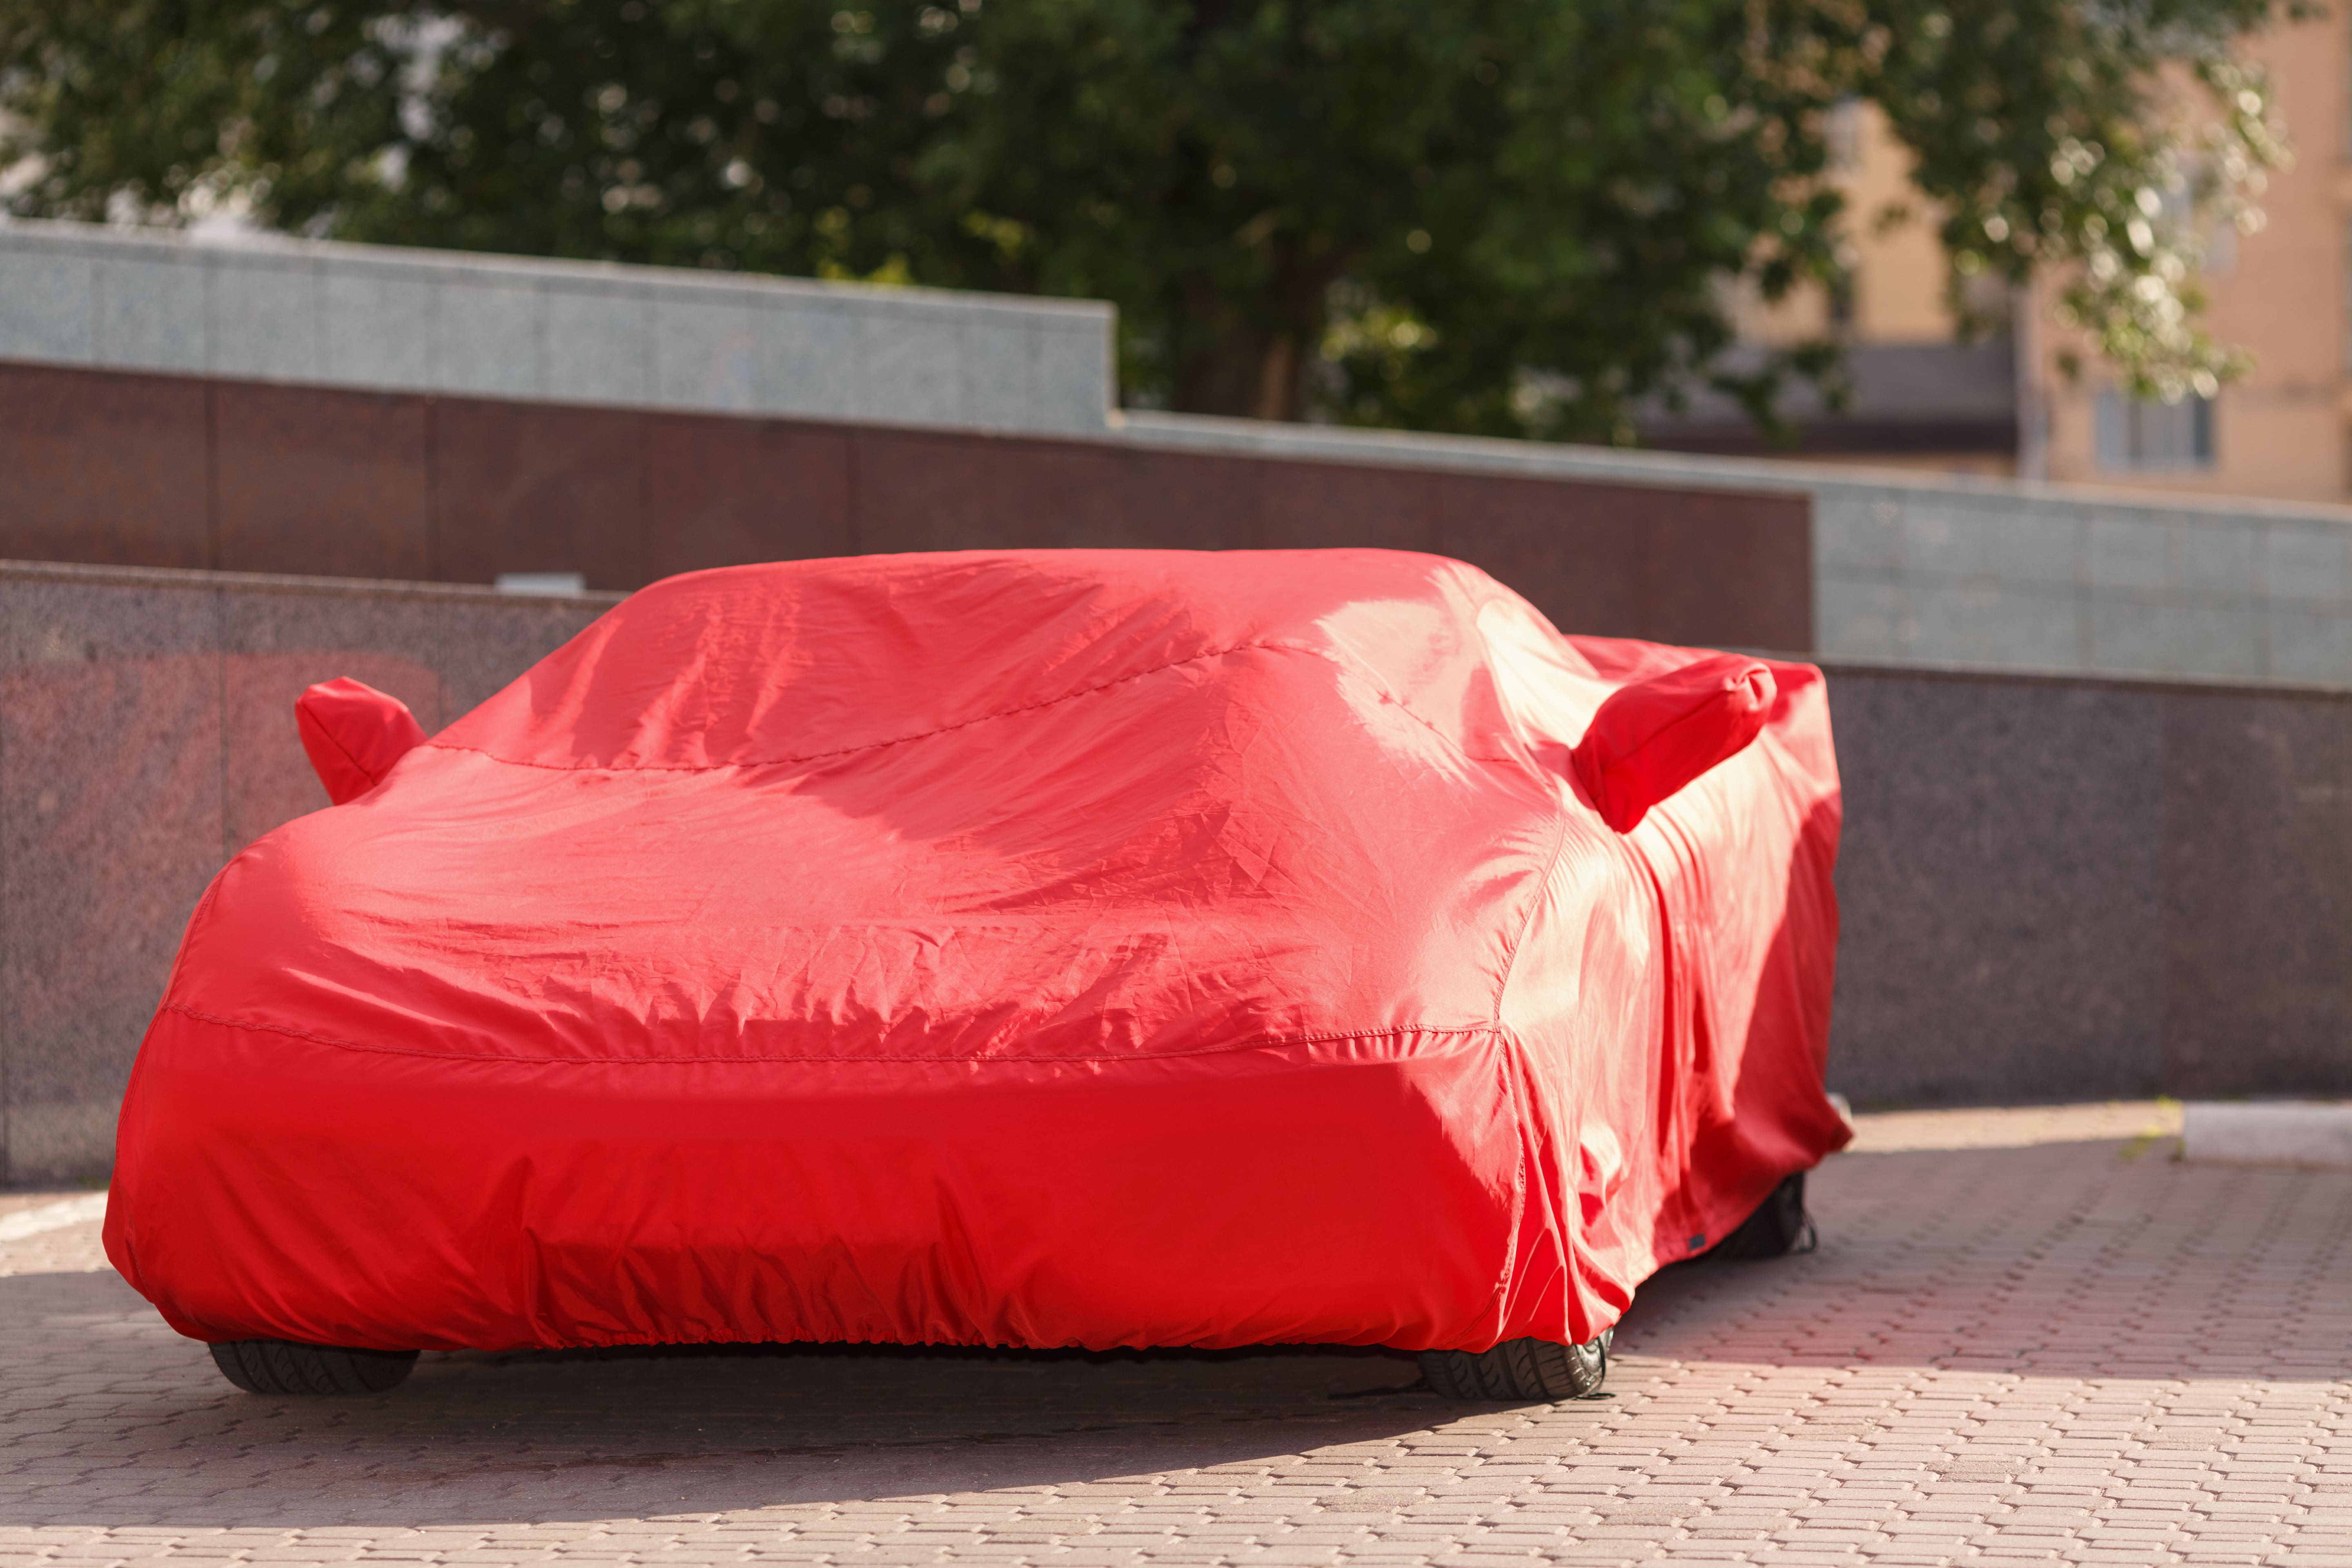 luxurious-red-roadster-cover-protects-against